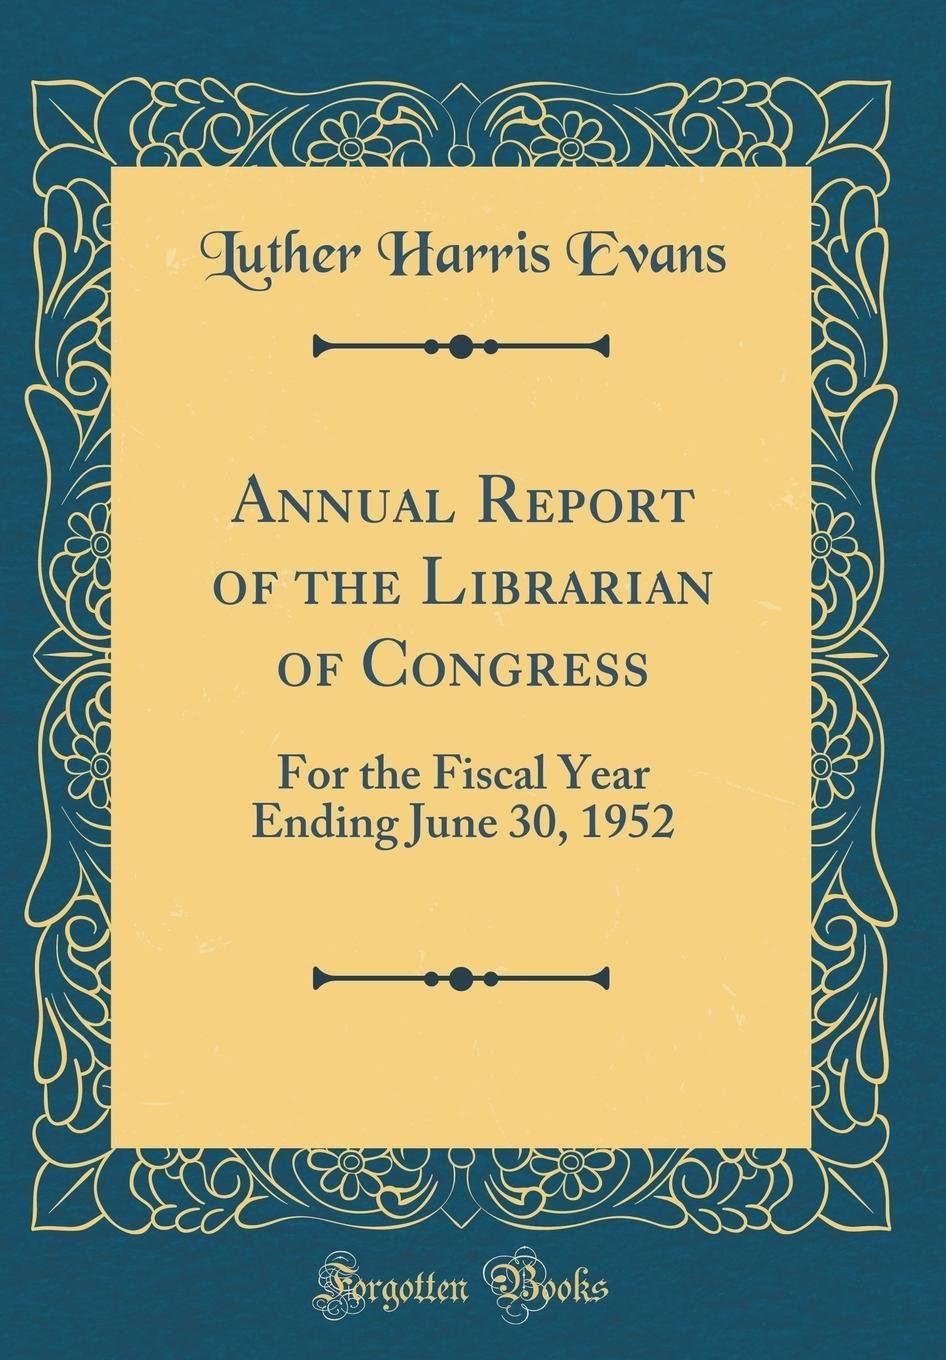 Annual Report of the Librarian of Congress: For the Fiscal Year Ending June 30, 1952 (Classic Reprint) pdf